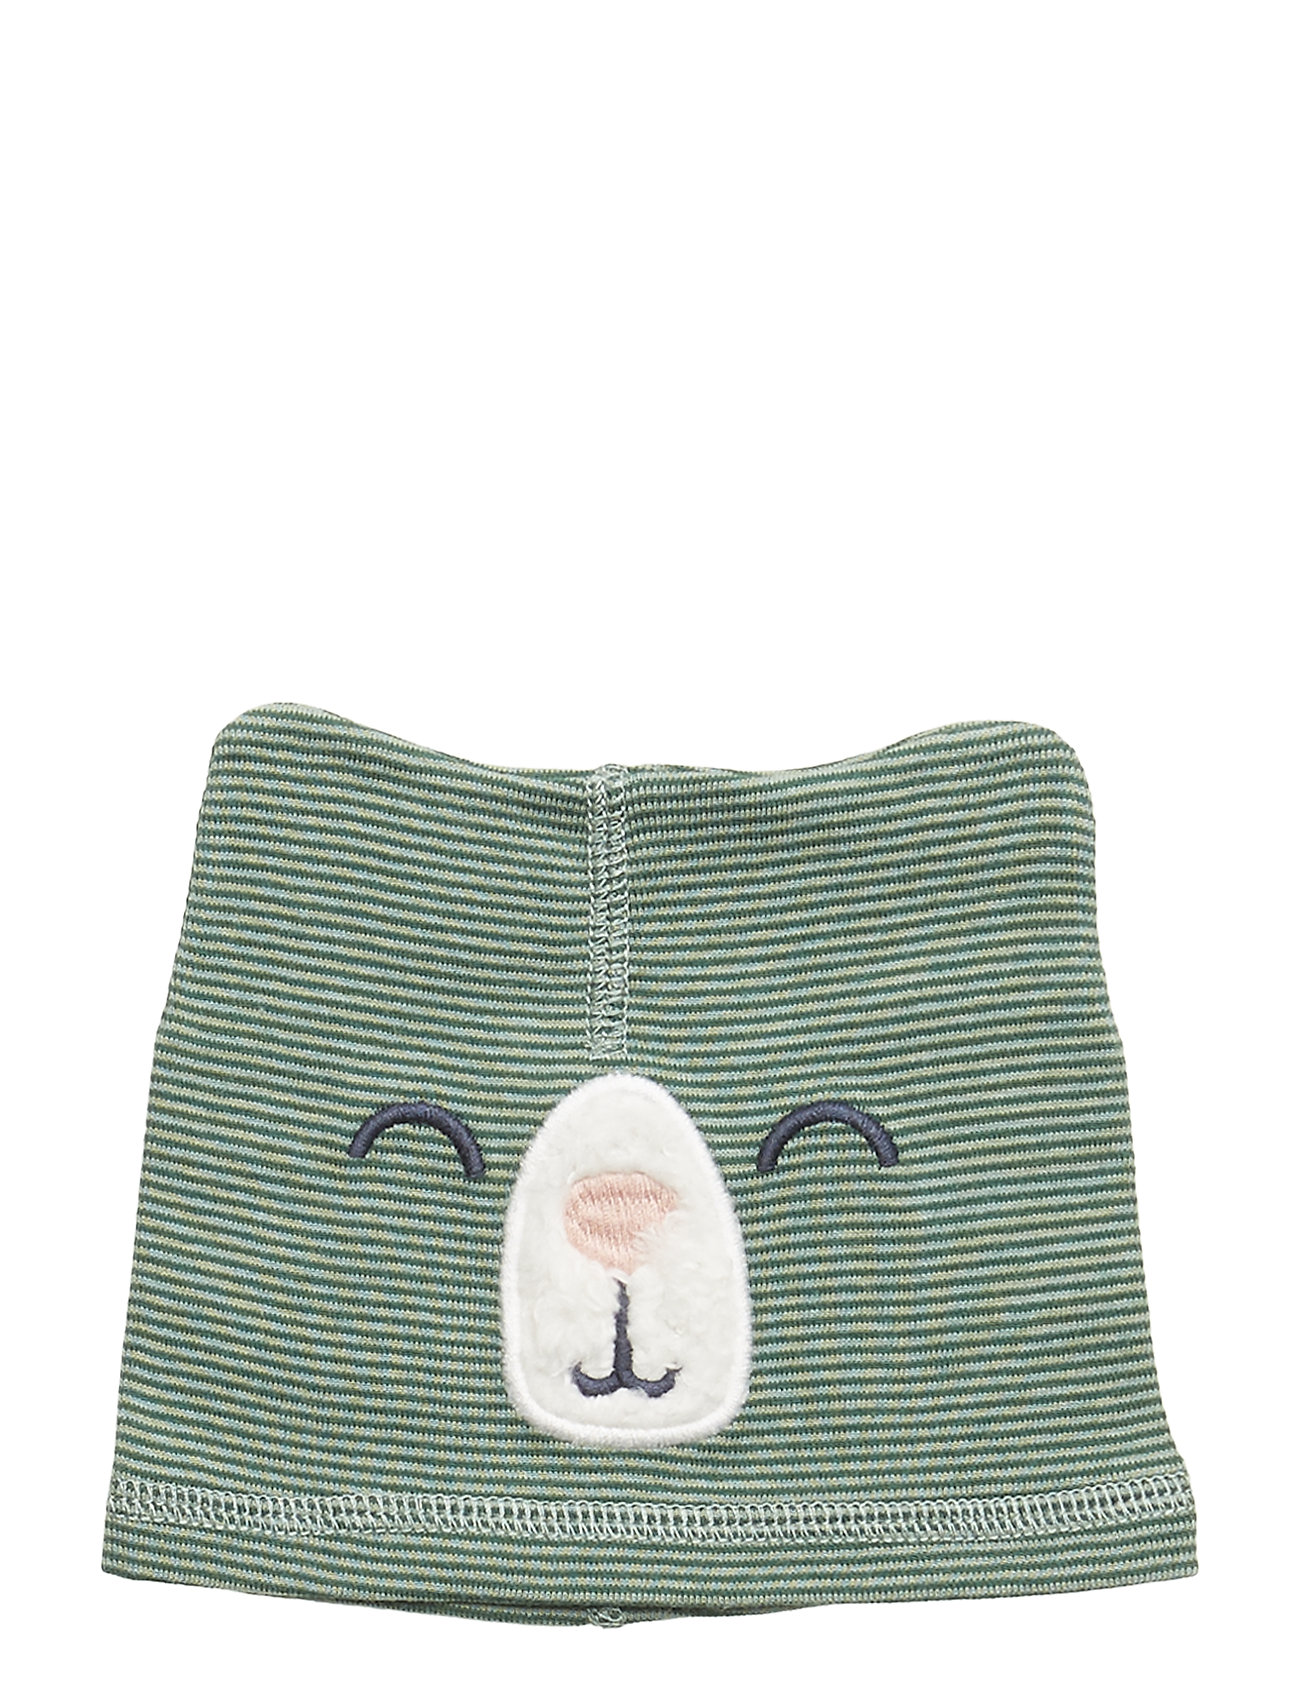 Polarn O. Pyret Cap animal face Newborn